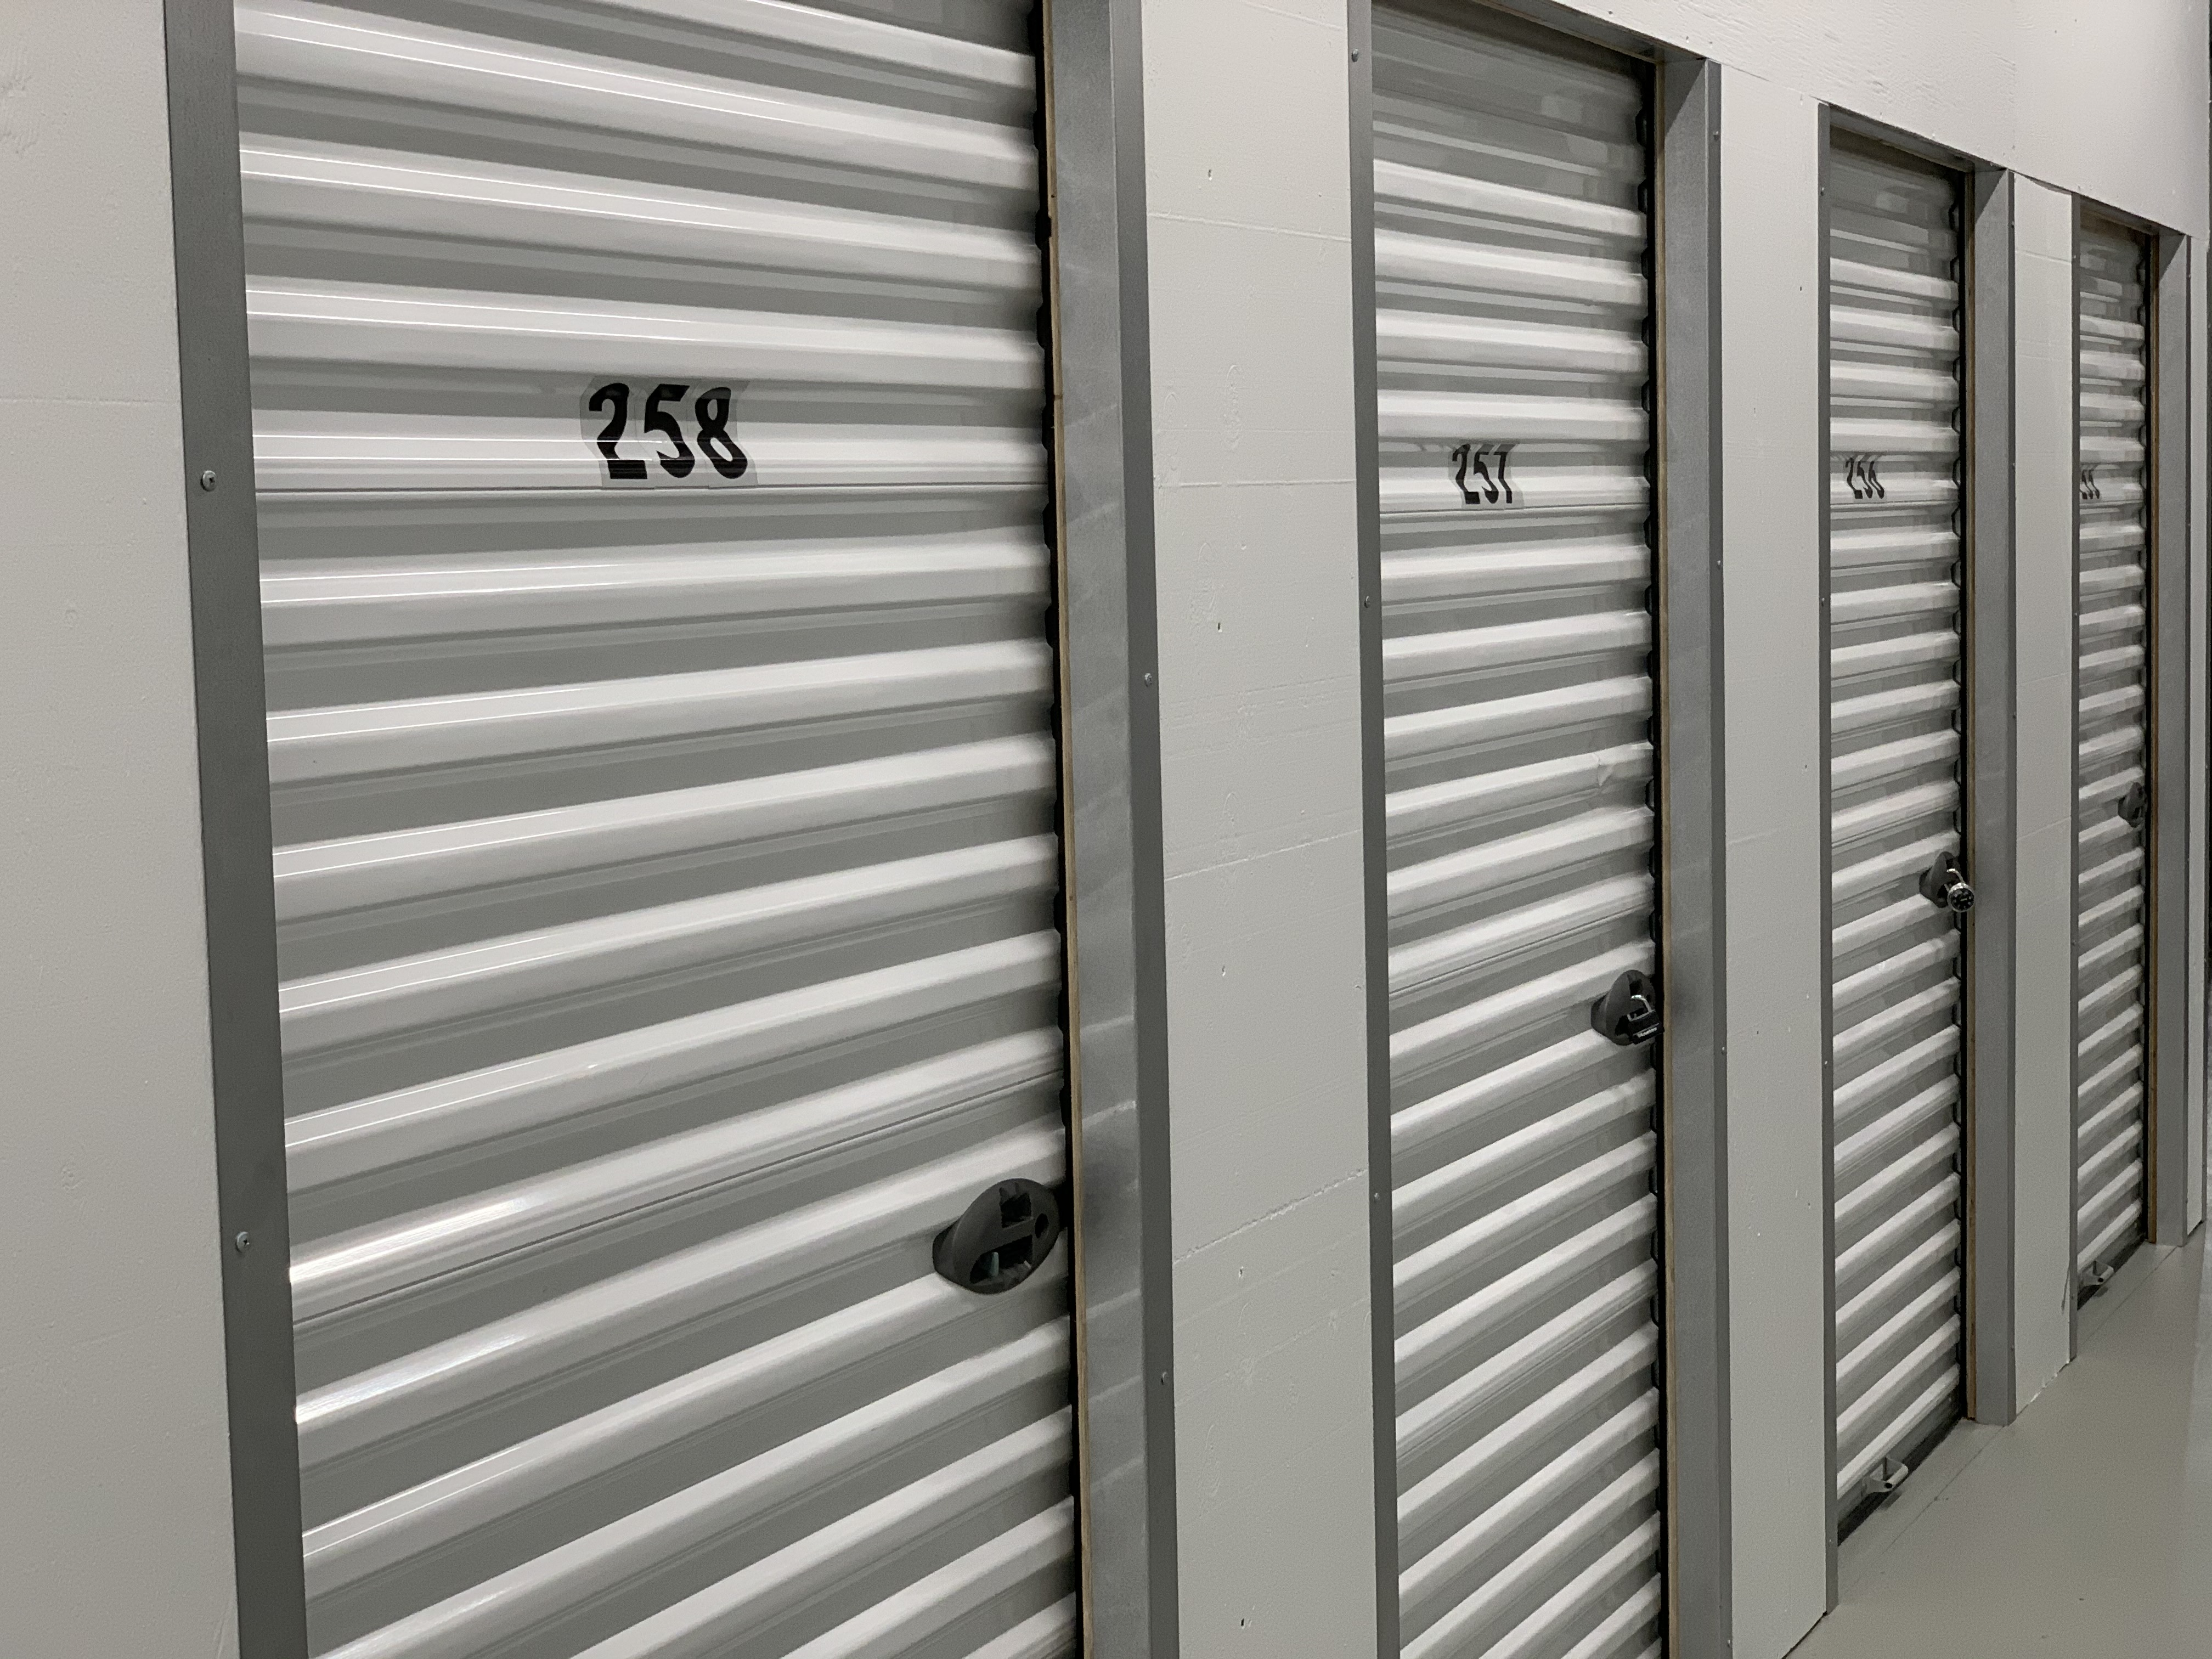 climated controlled storage in austin, mn